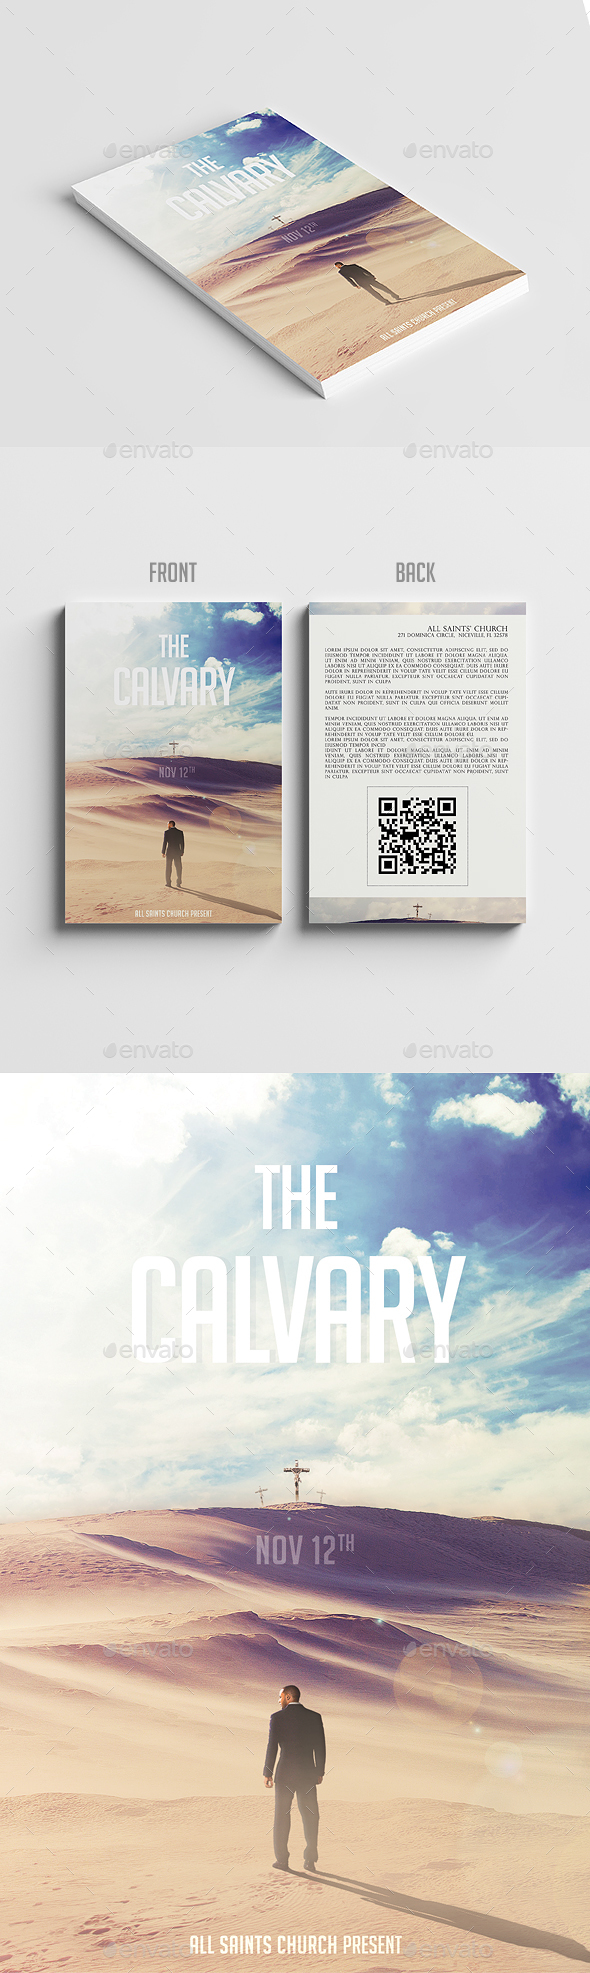 The Calvary - Church Flyers